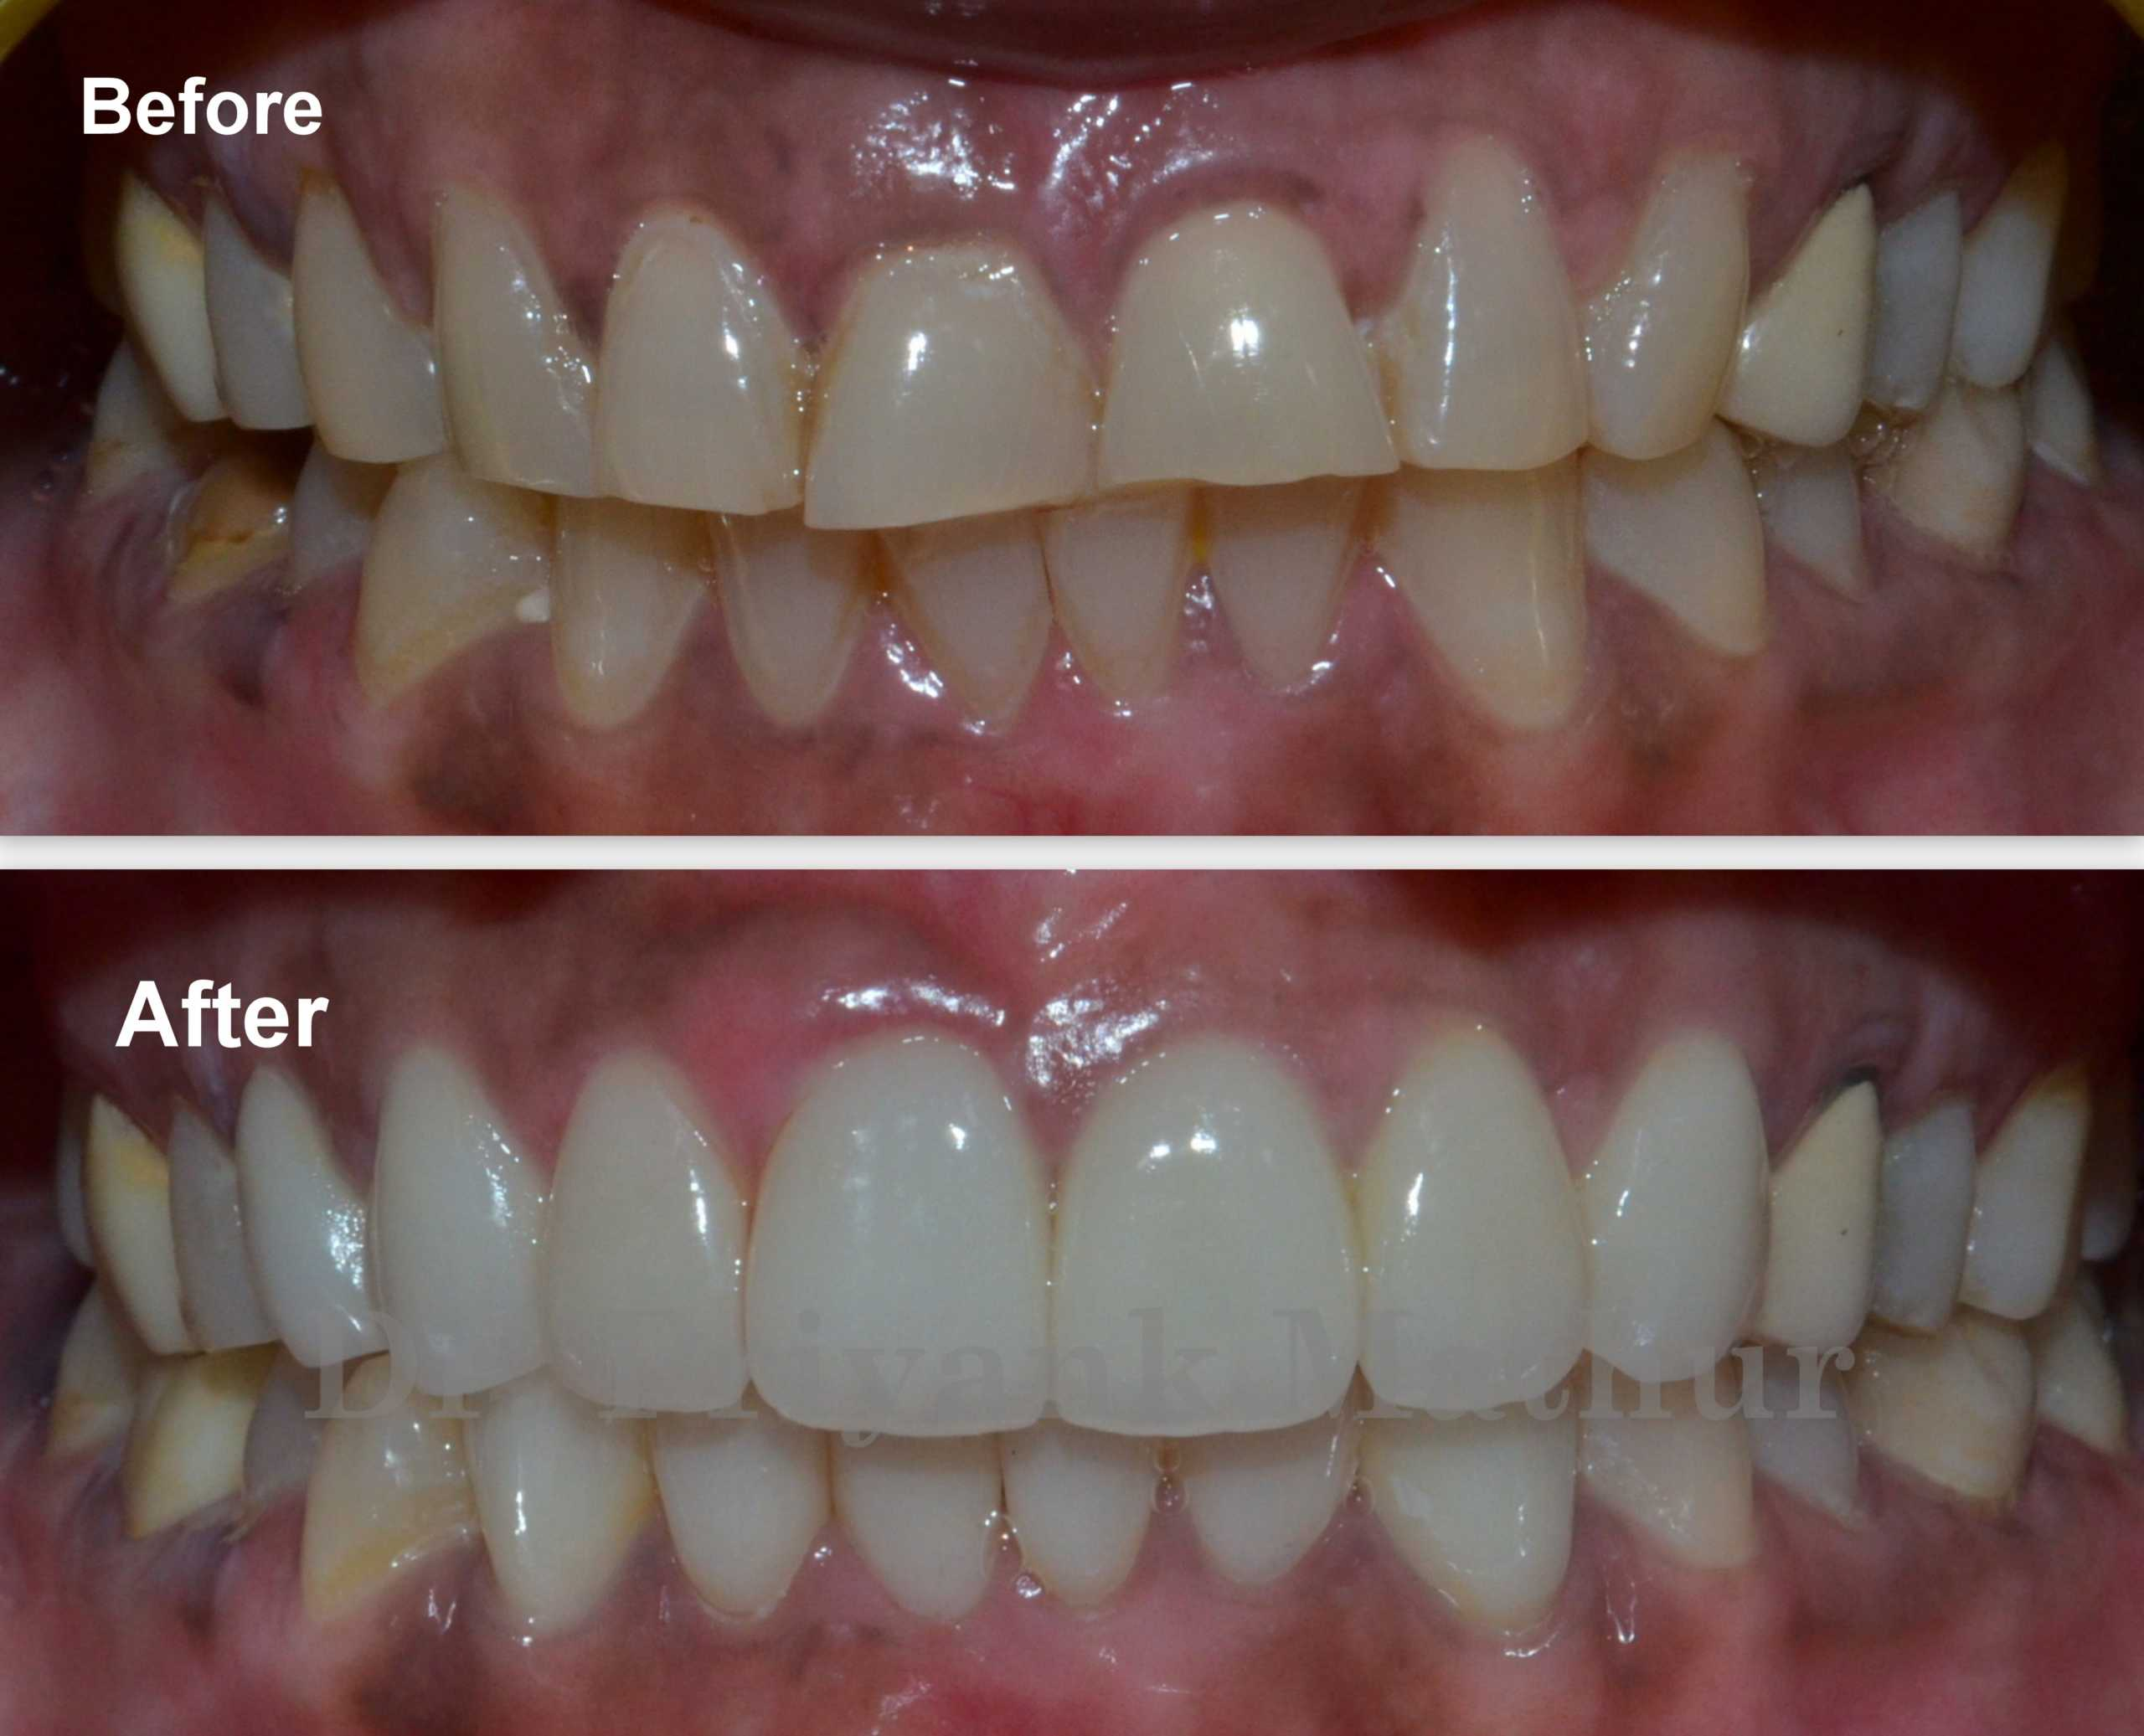 Dental crowns in Pune, India